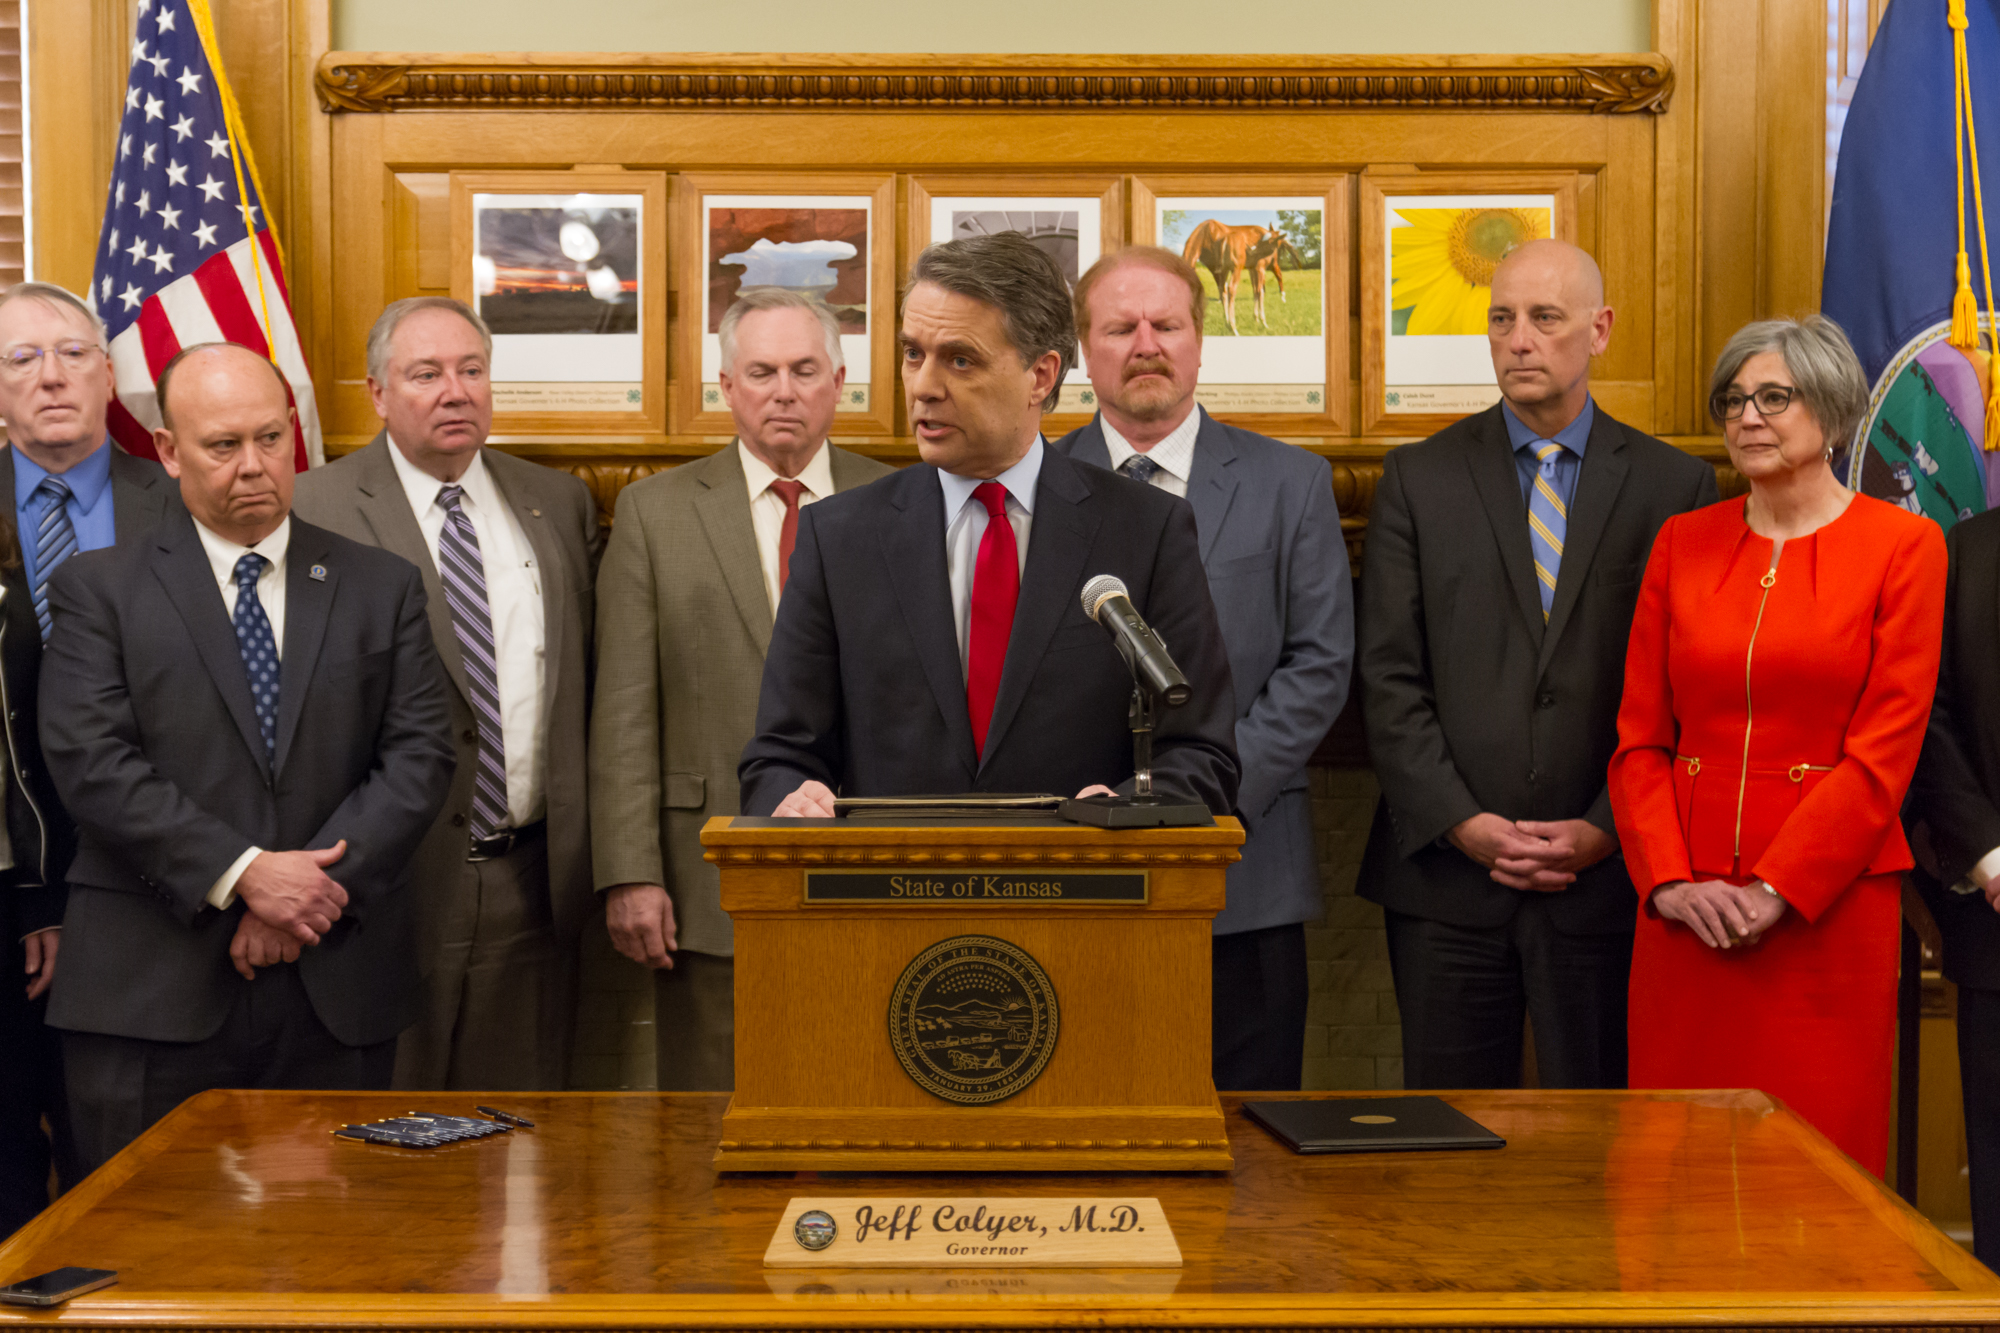 Governor Jeff Colyer, M.D. signs Executive Order 18-09 creating Governor's Task Force to Address Substance Use Disorders